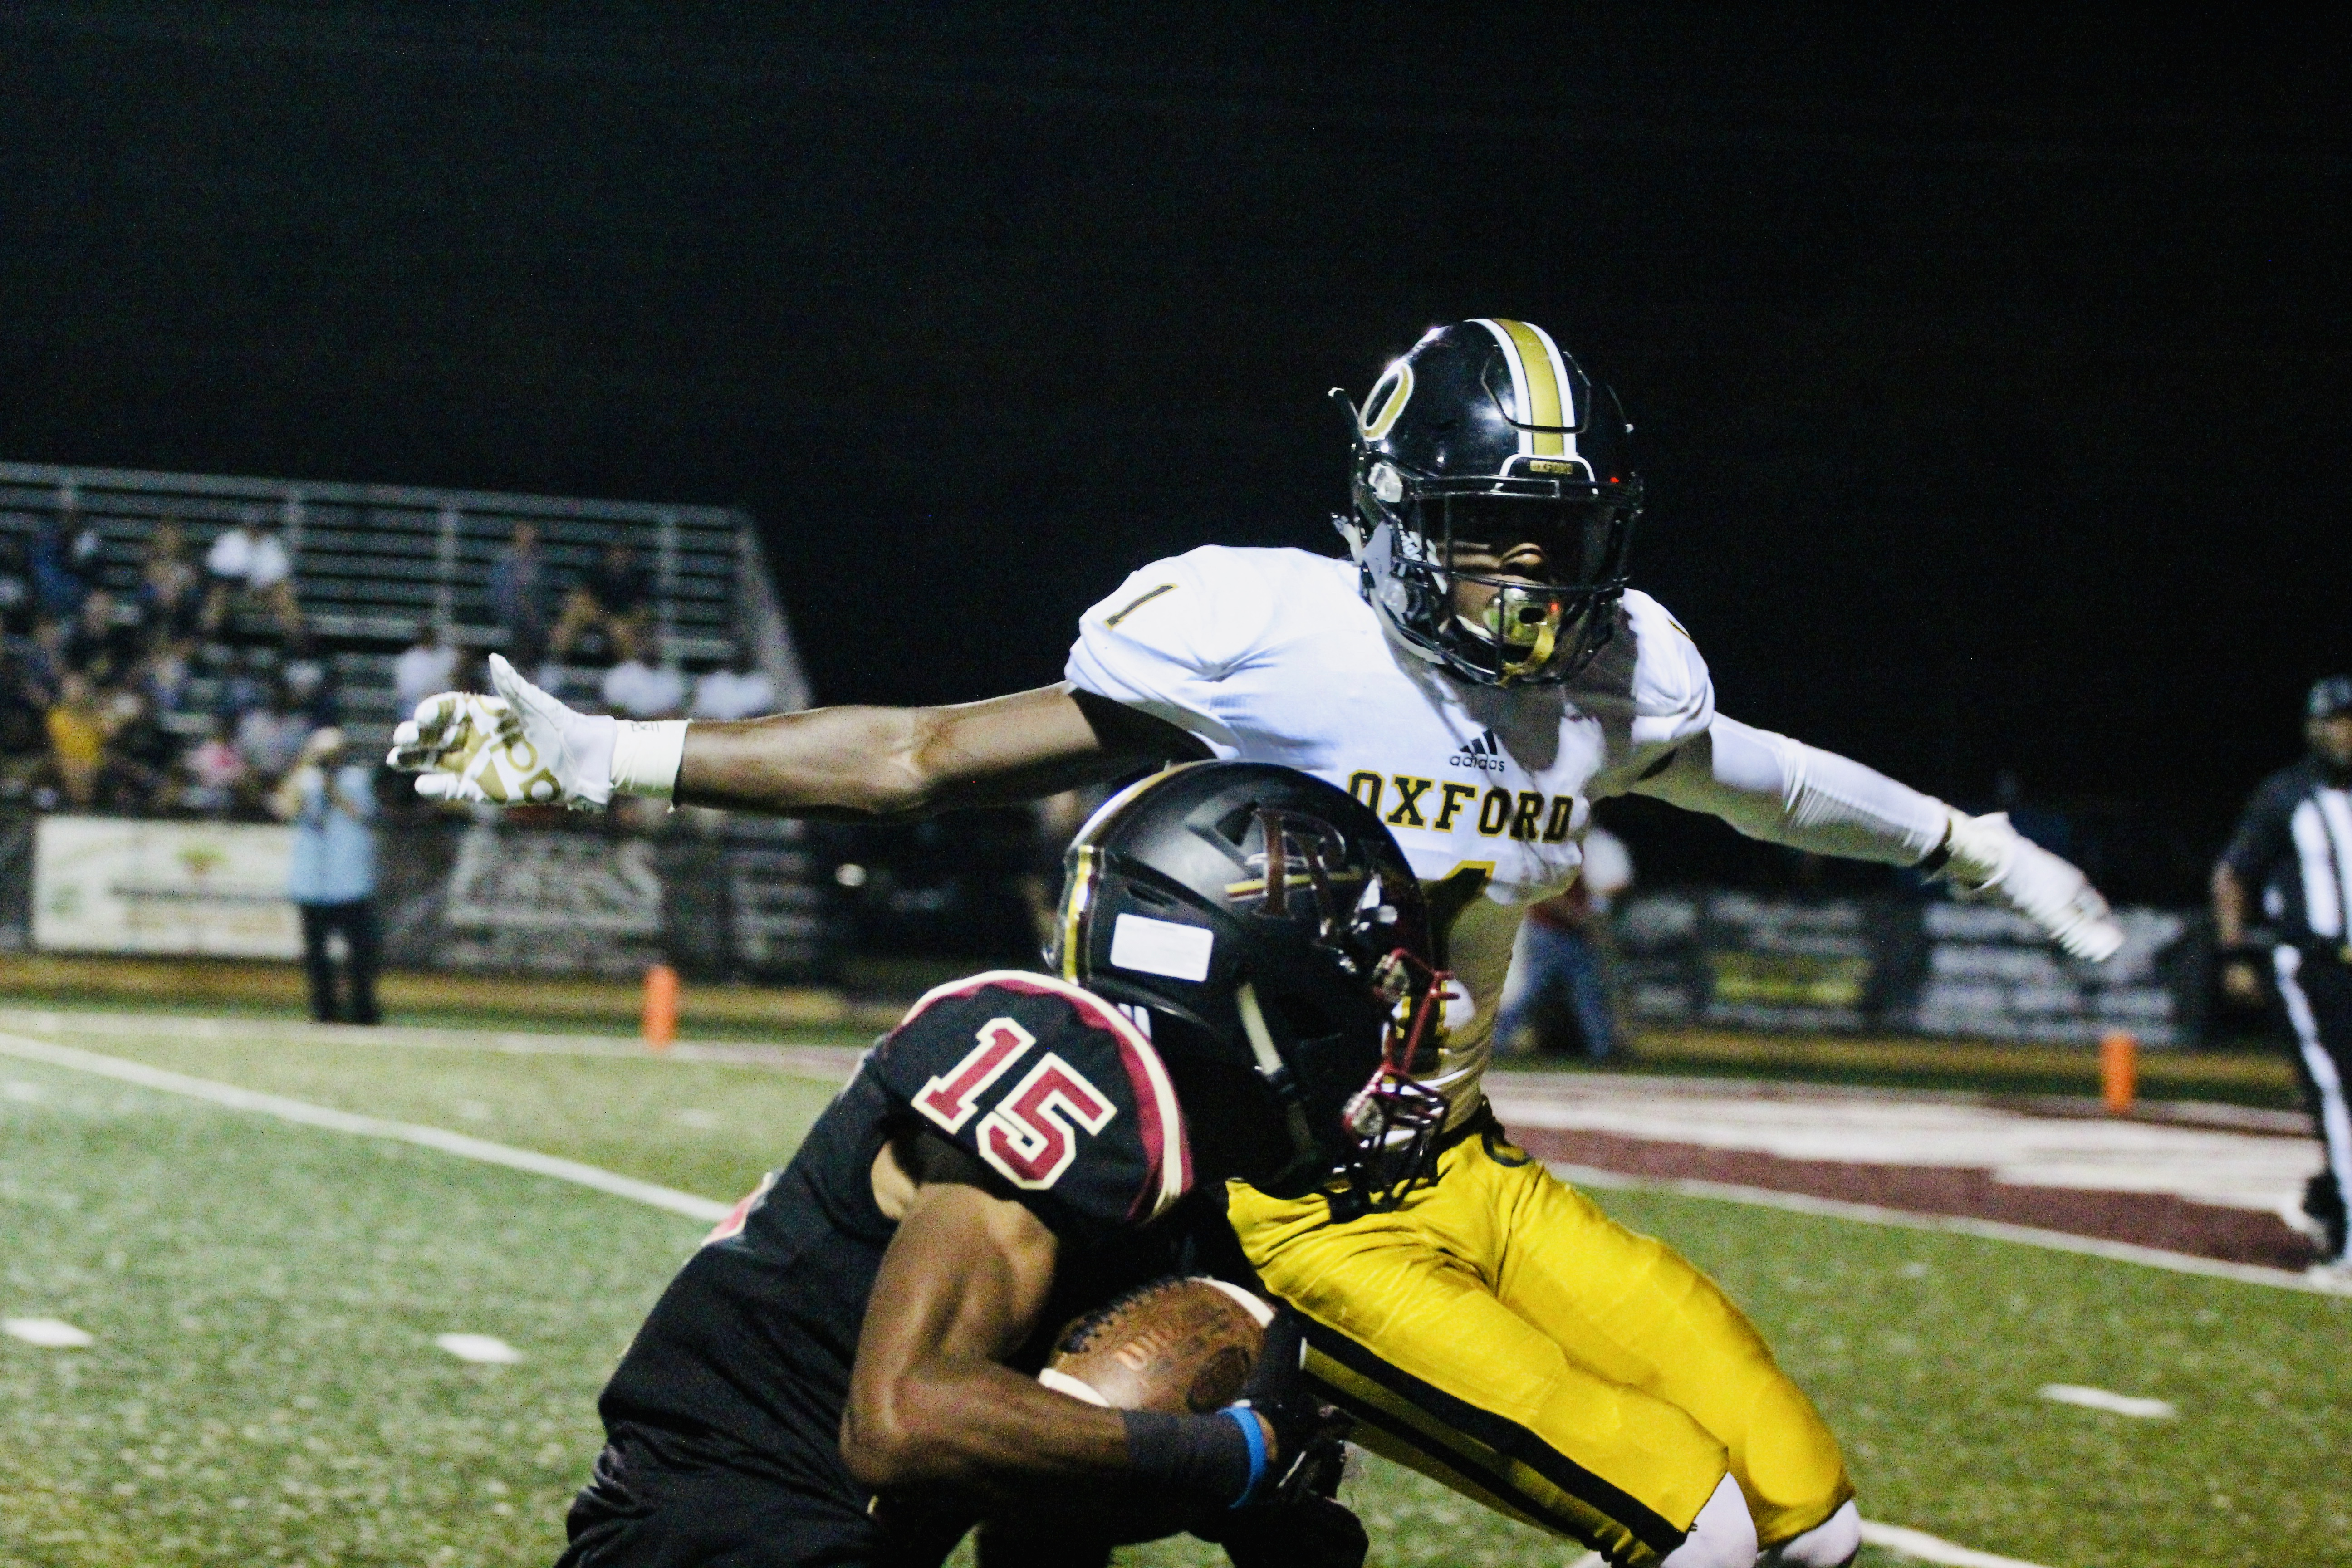 Oxford stuns Pinson Valley to remain undefeated on the season